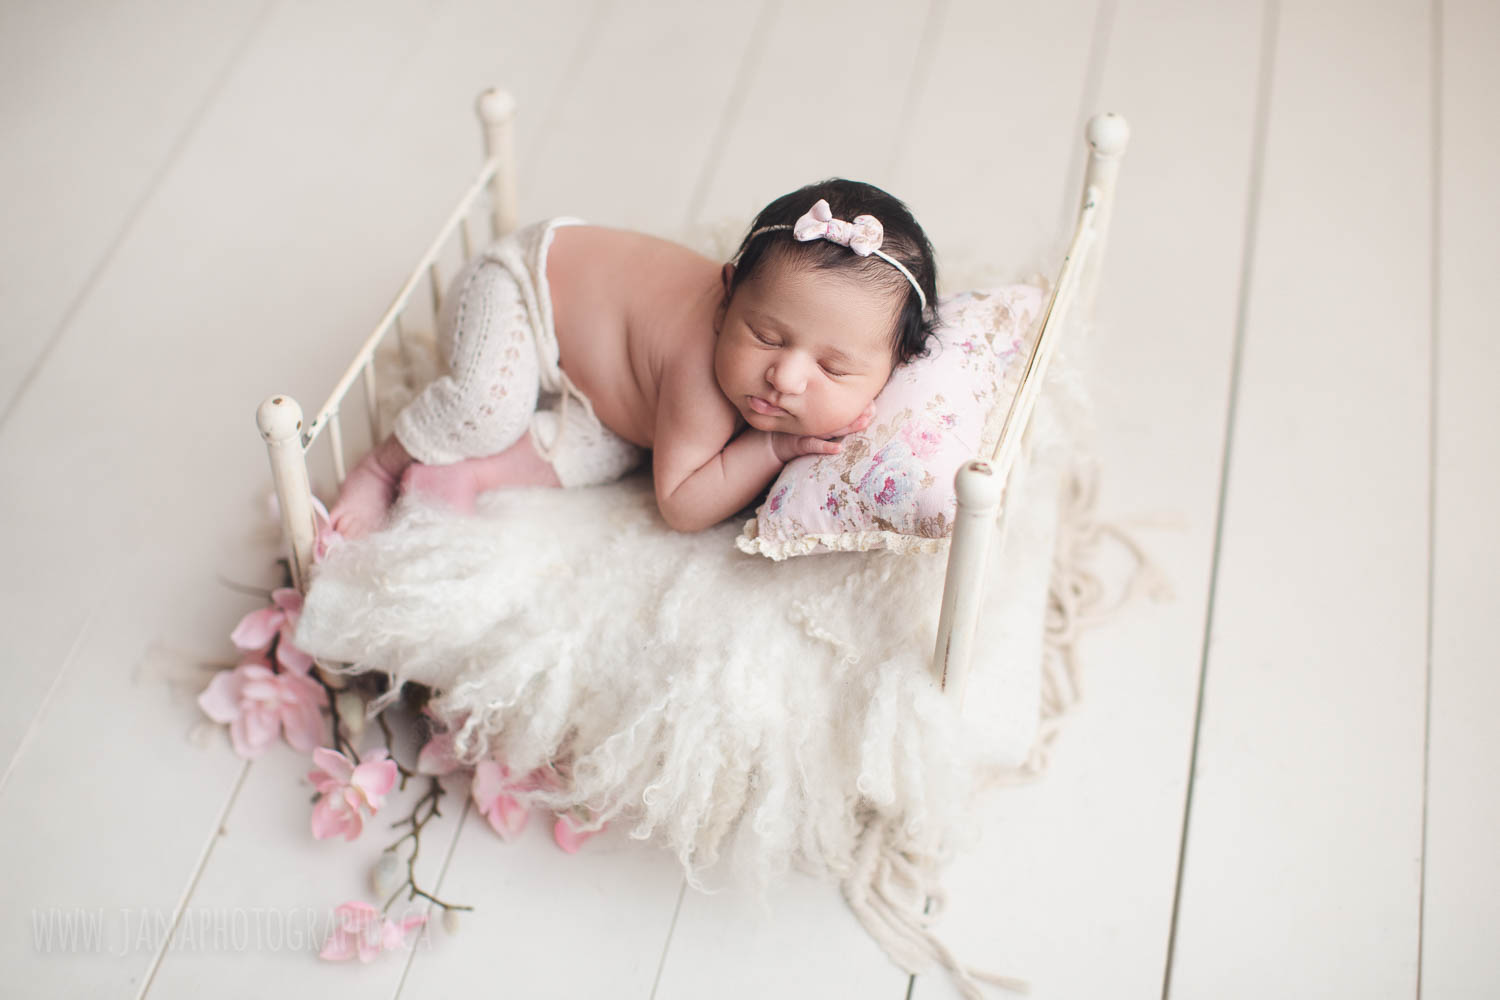 newborn photography - baby girl sleeping in a white bed